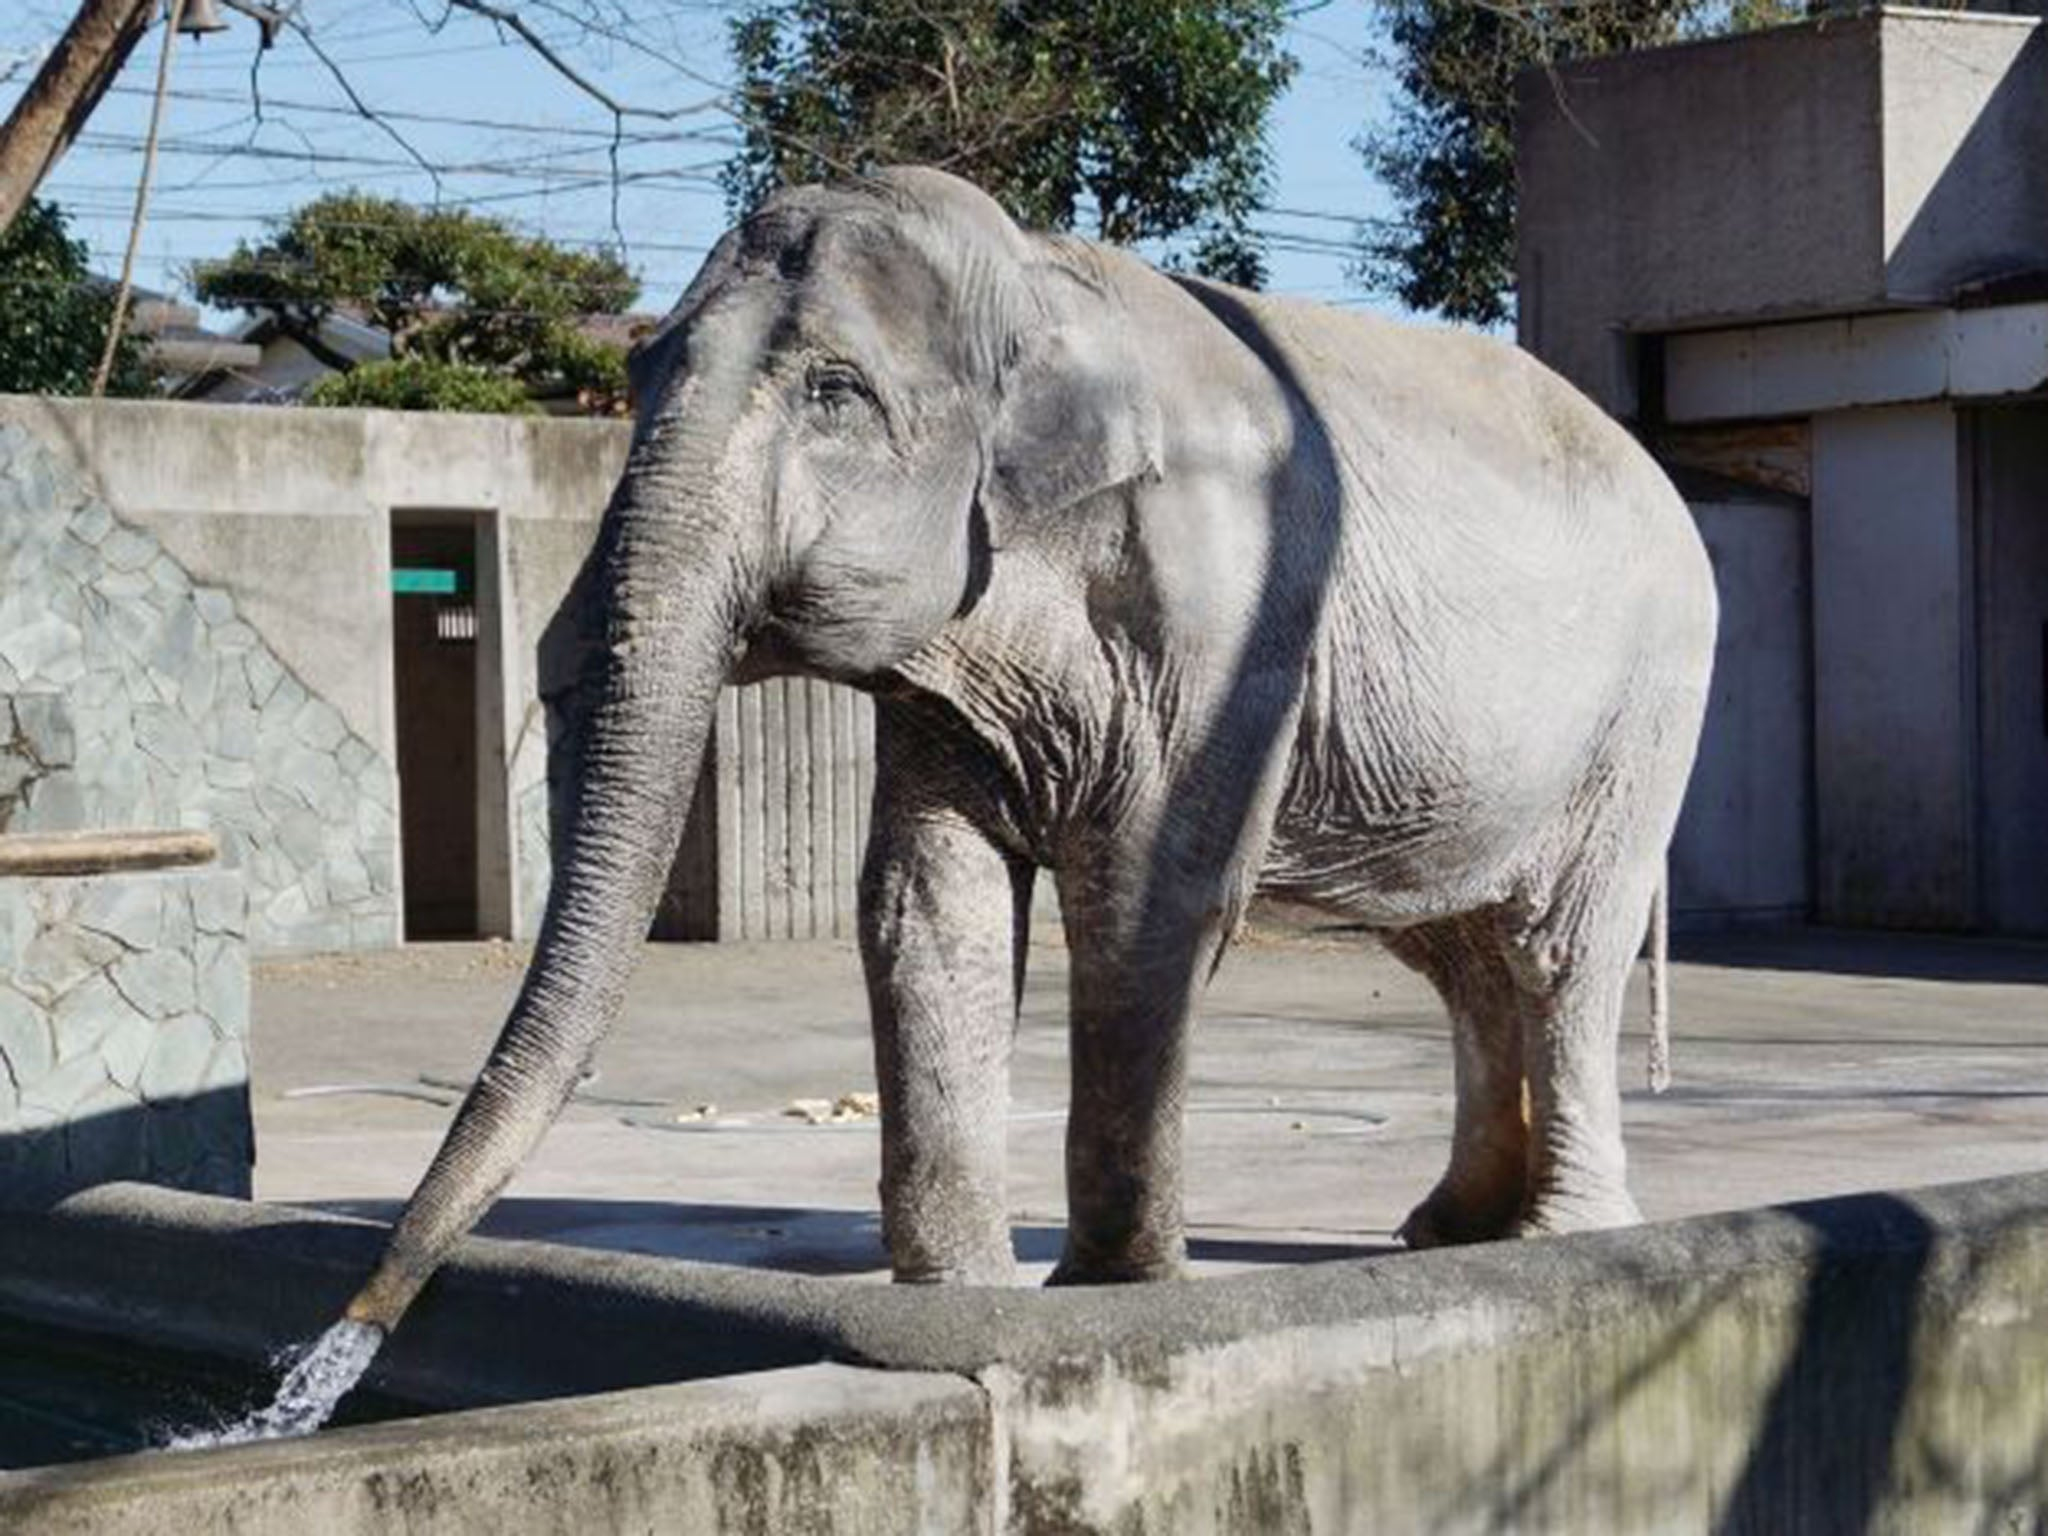 Lonely elephant who sparked petition over poor living conditions lonely elephant who sparked petition over poor living conditions dies in japanese zoo aged 69 the independent biocorpaavc Gallery